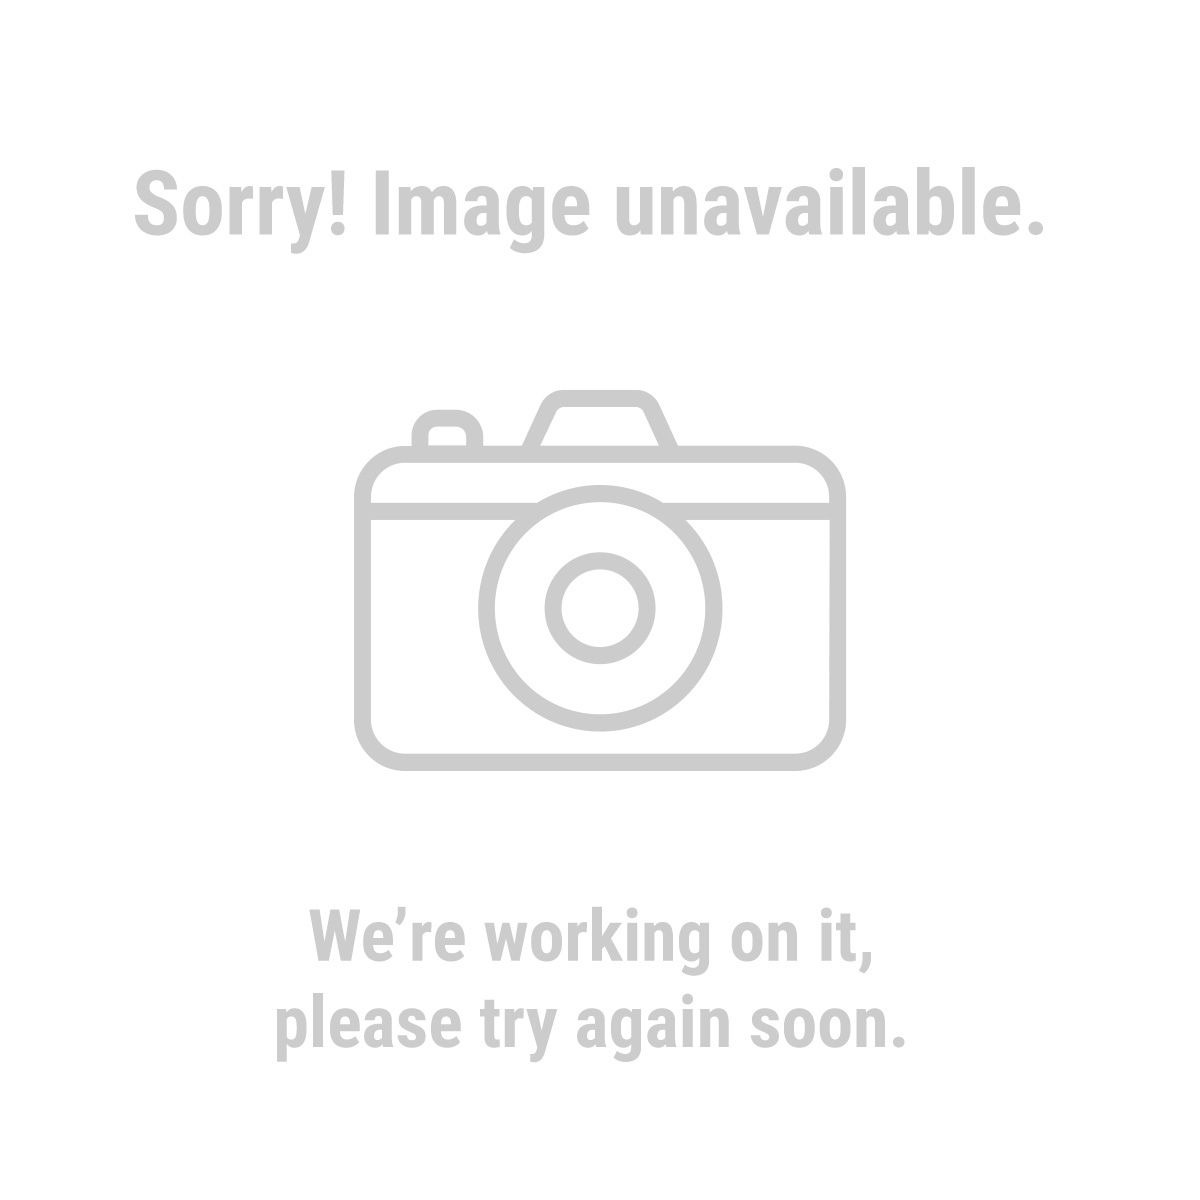 Admiral 62739 7-1/4 in. 60 ATBT Finishing Circular Saw Blade